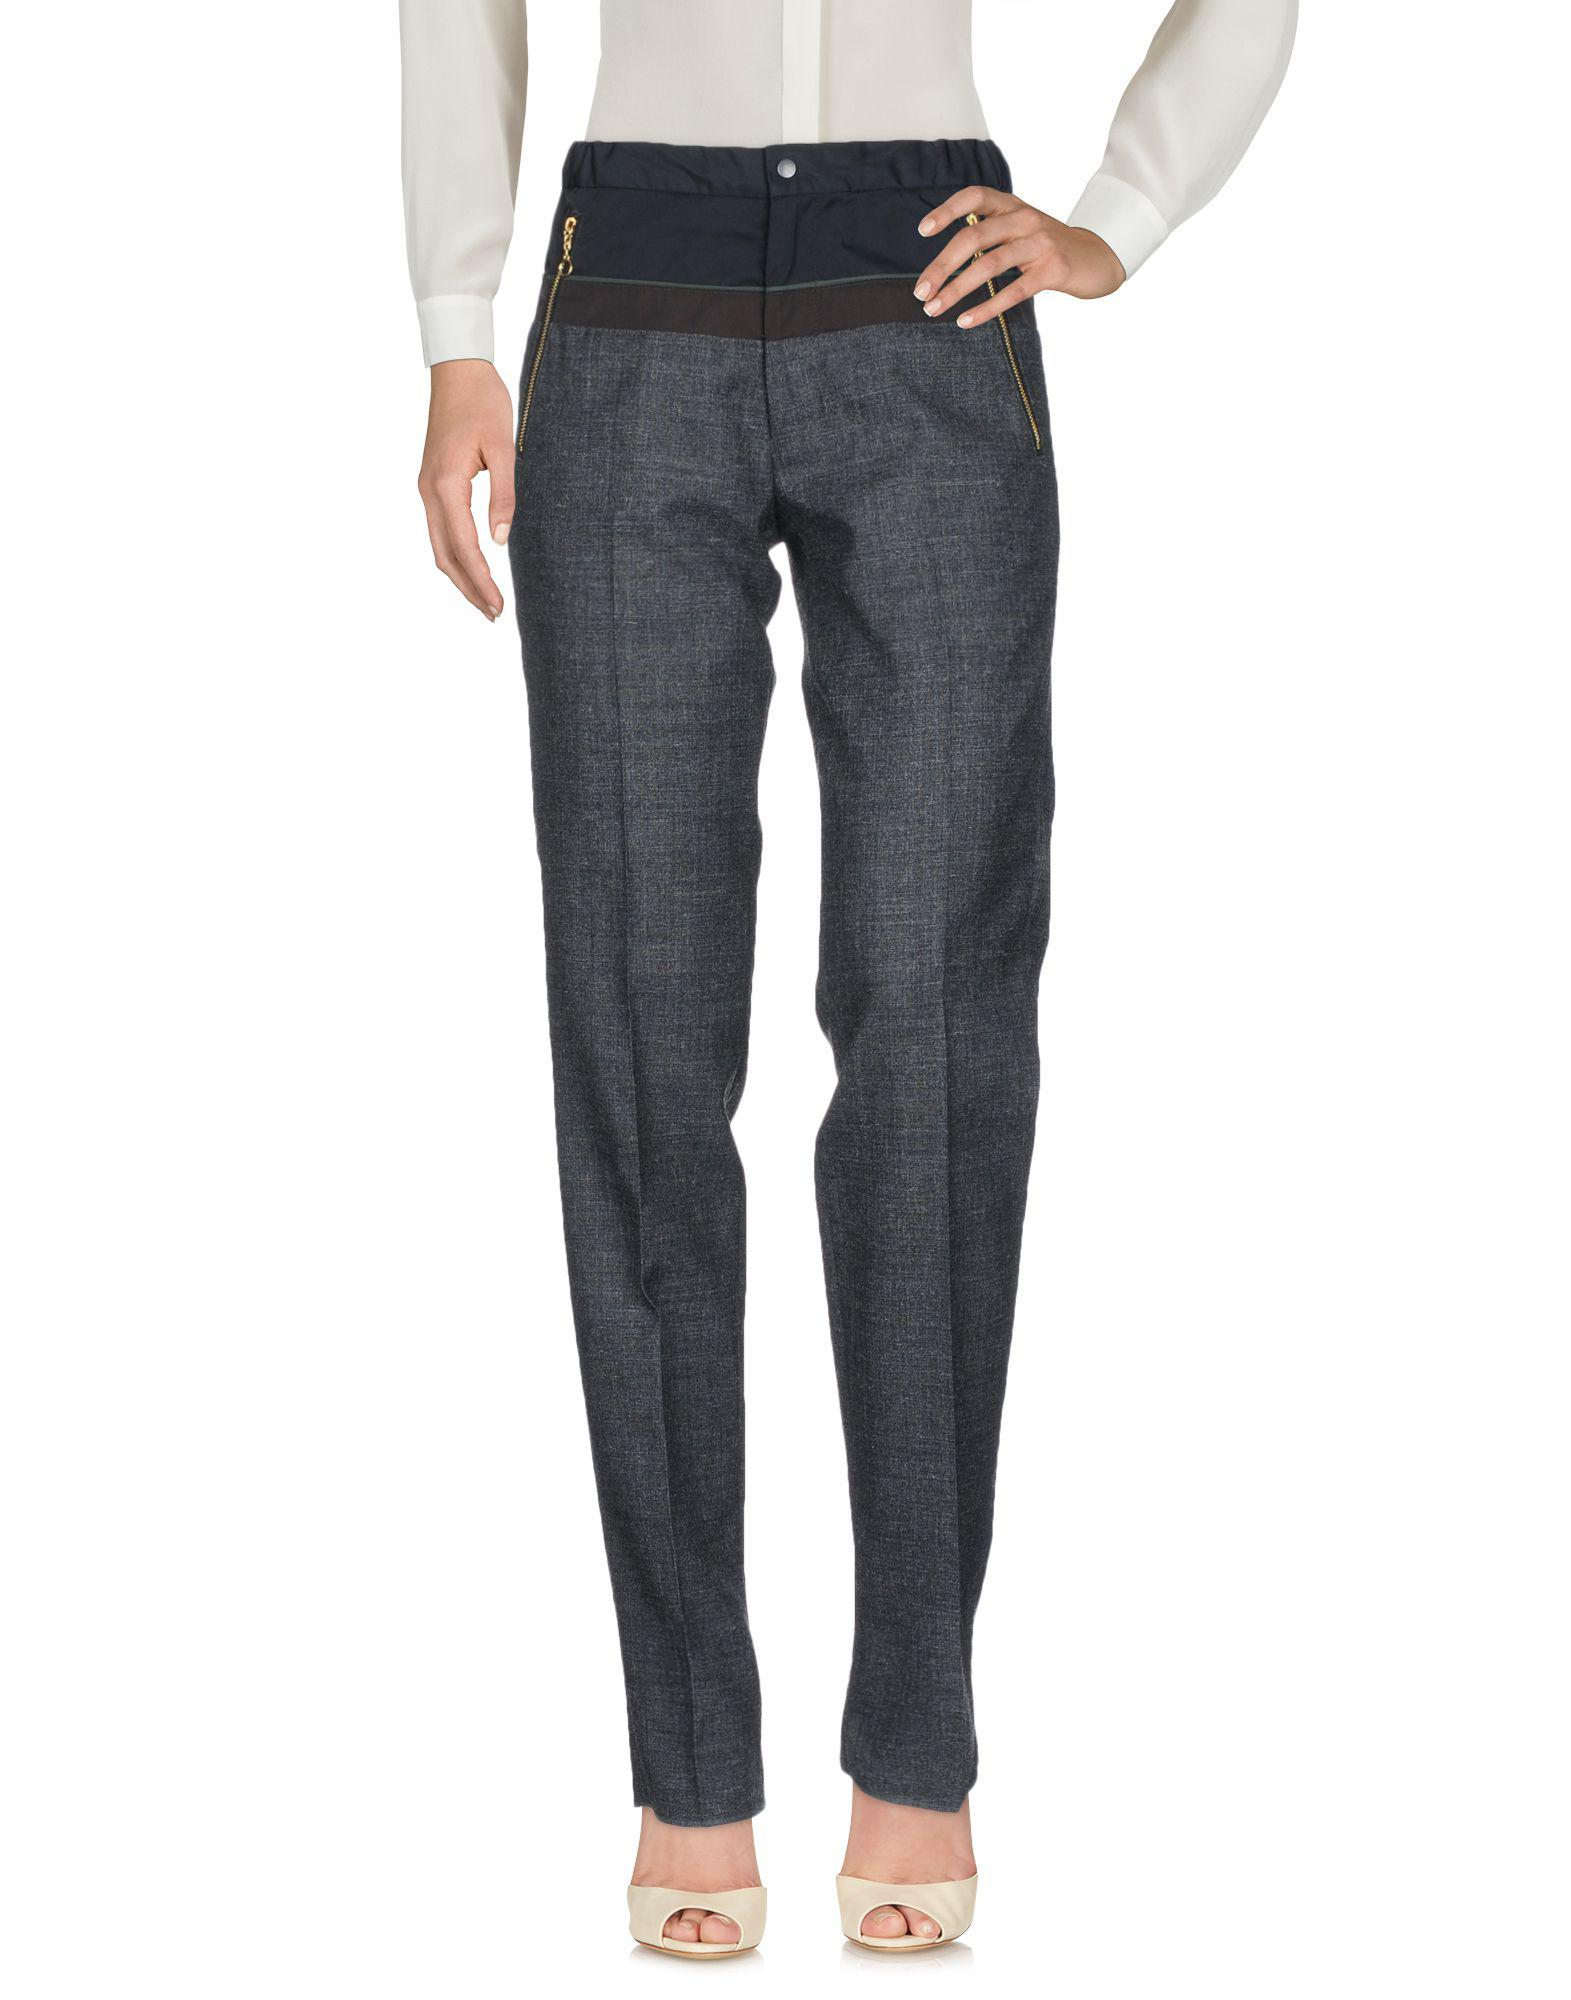 High Quality Buy Online TROUSERS - Casual trousers Kolor Buy Cheap Genuine Excellent Cheap Online j5luPjwP1